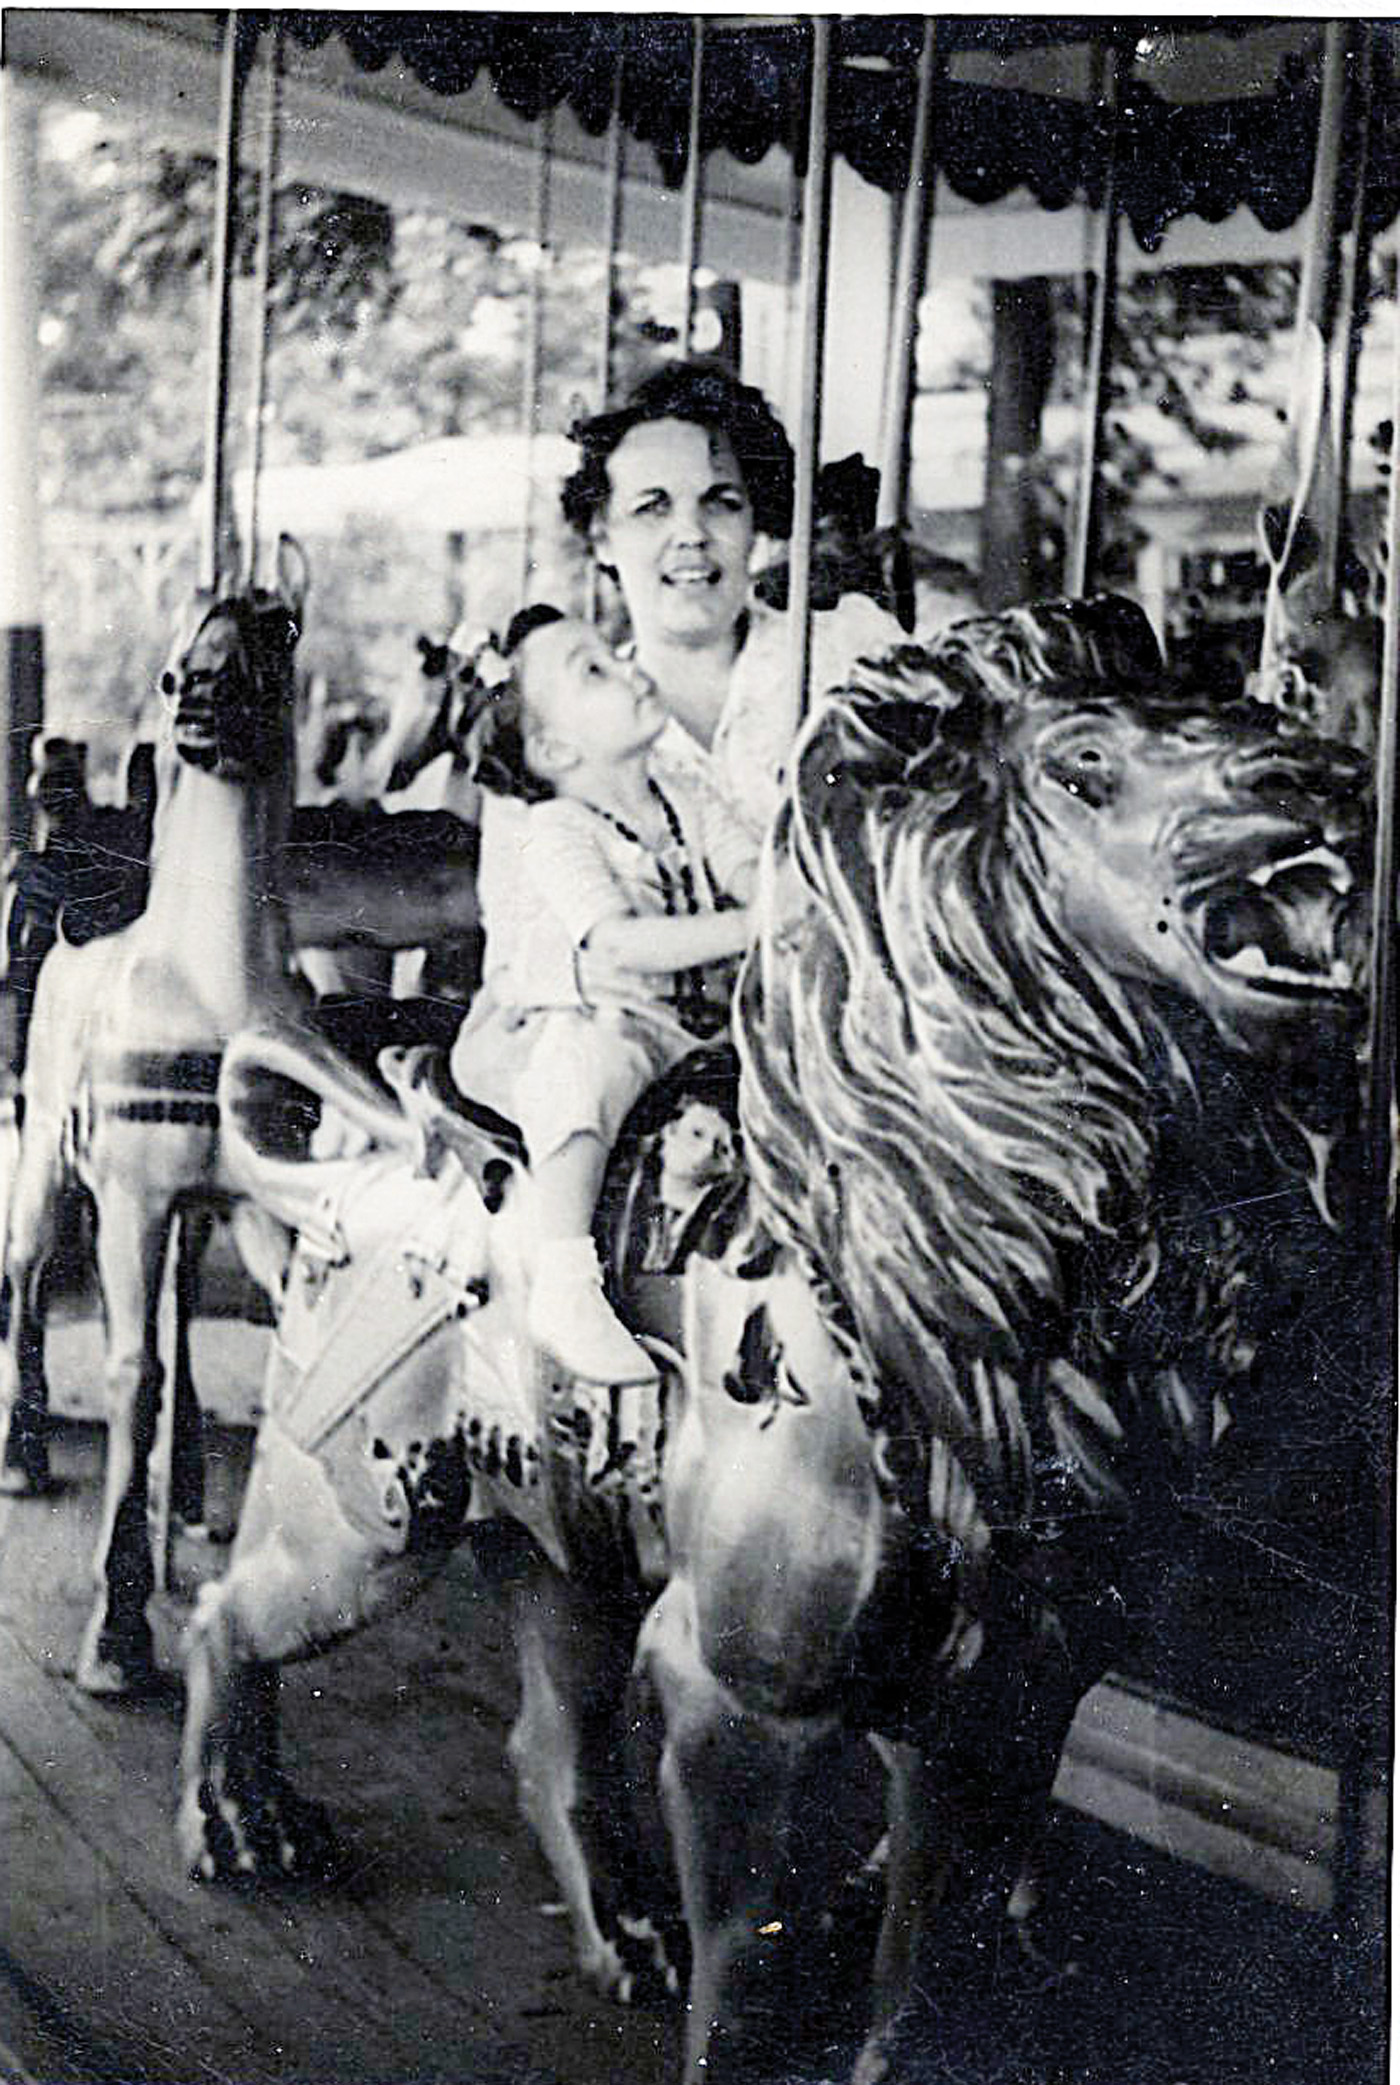 Dentzel-carousel-lion-Tolchester-Park-MD-1950-photo